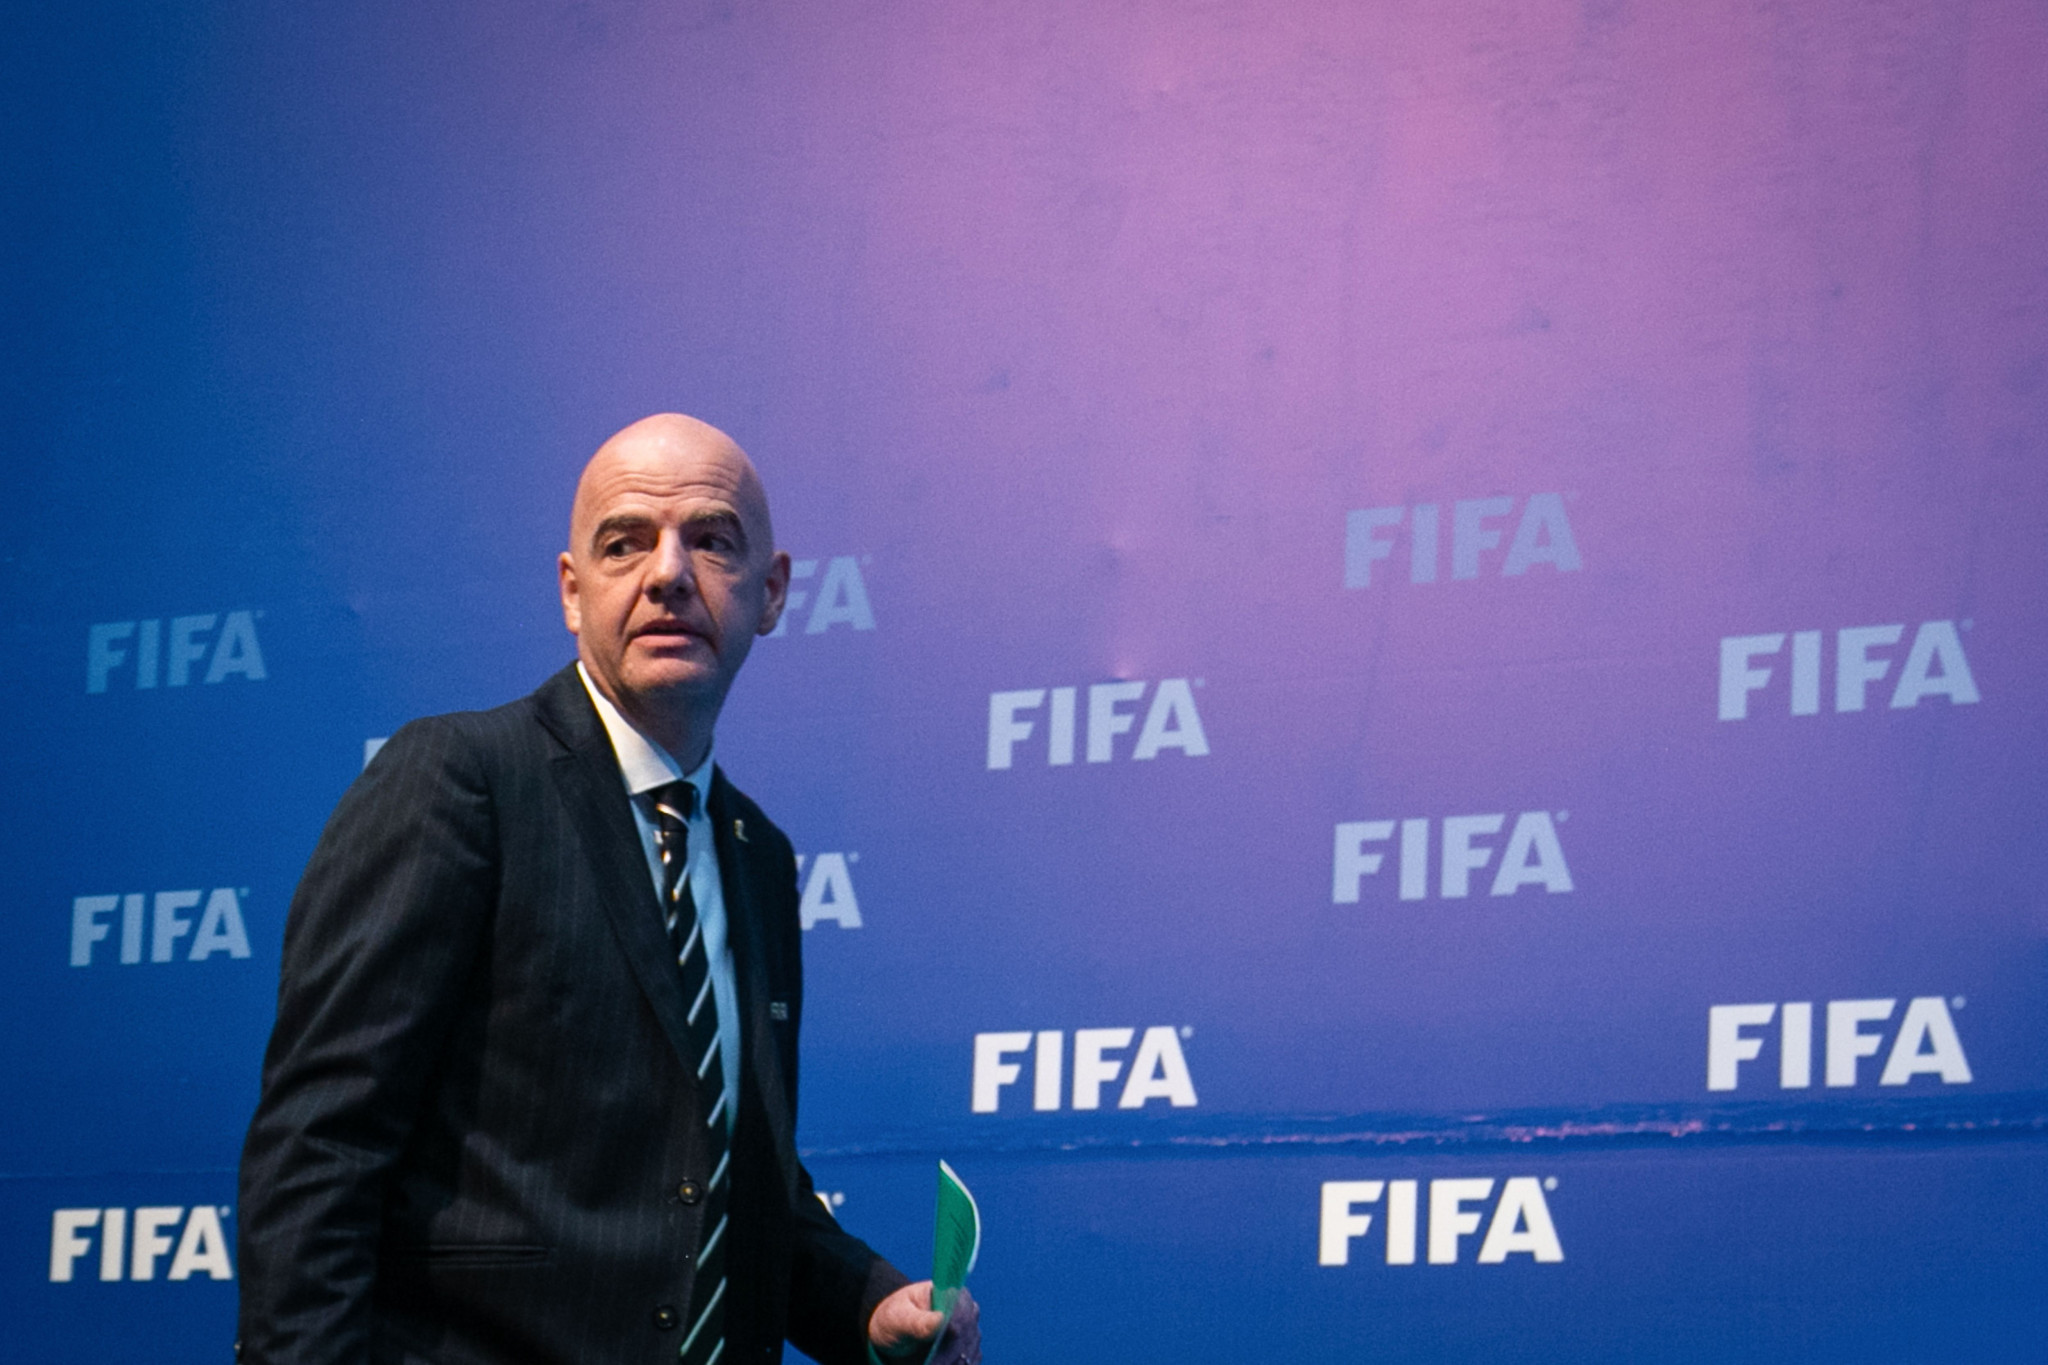 FIFA President Gianni Infantino said the changes sent an important message about their value of women's football ©Getty Images